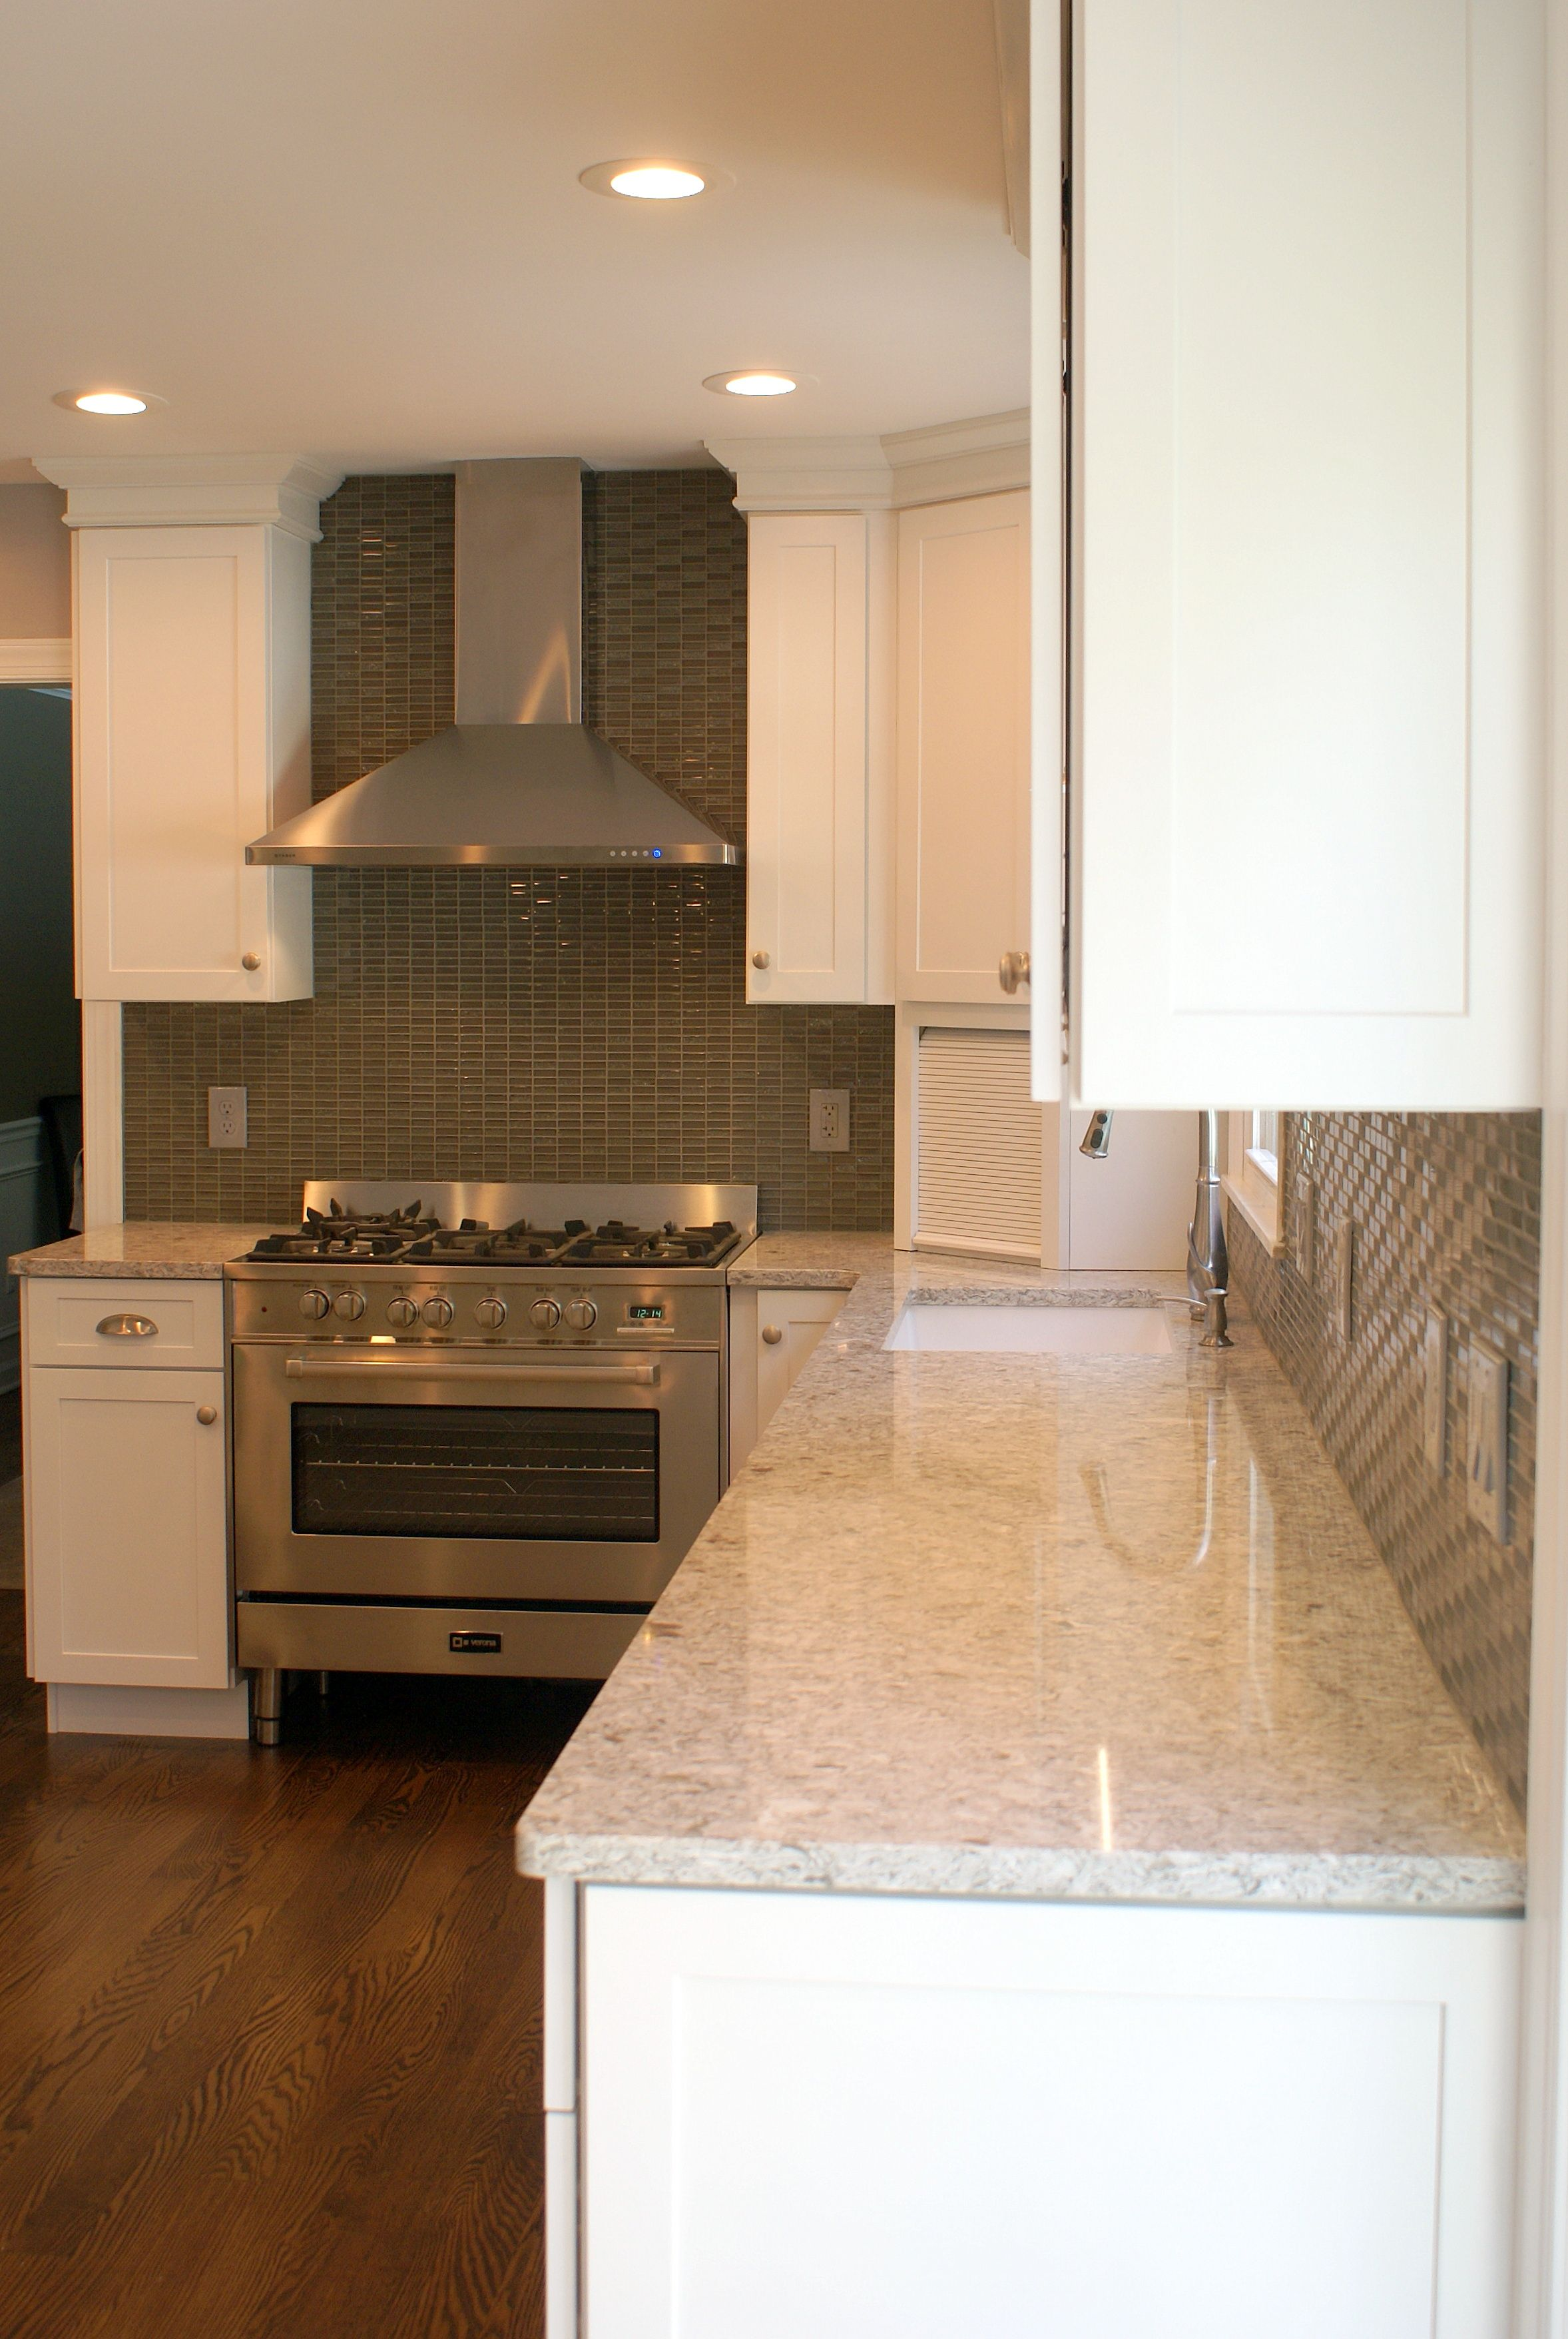 White Diamond Kitchen With New Quay Quartz Countertops (4 Of 15)